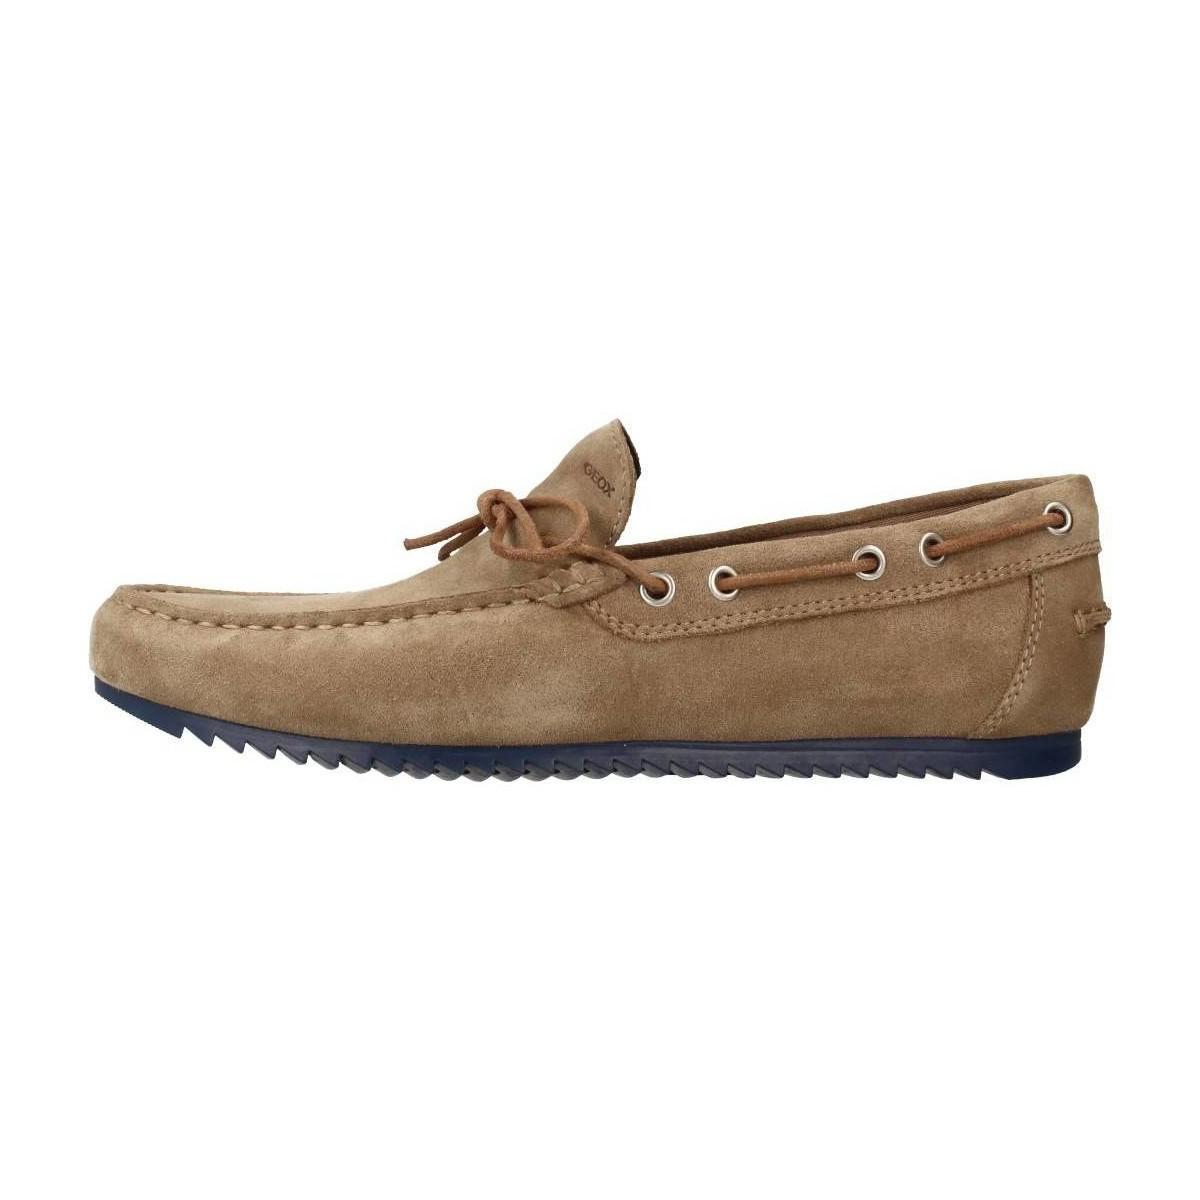 Geox U Shark Mens Loafers Casual Shoes In Brown For Men D Island Slip On England Suede Gallery